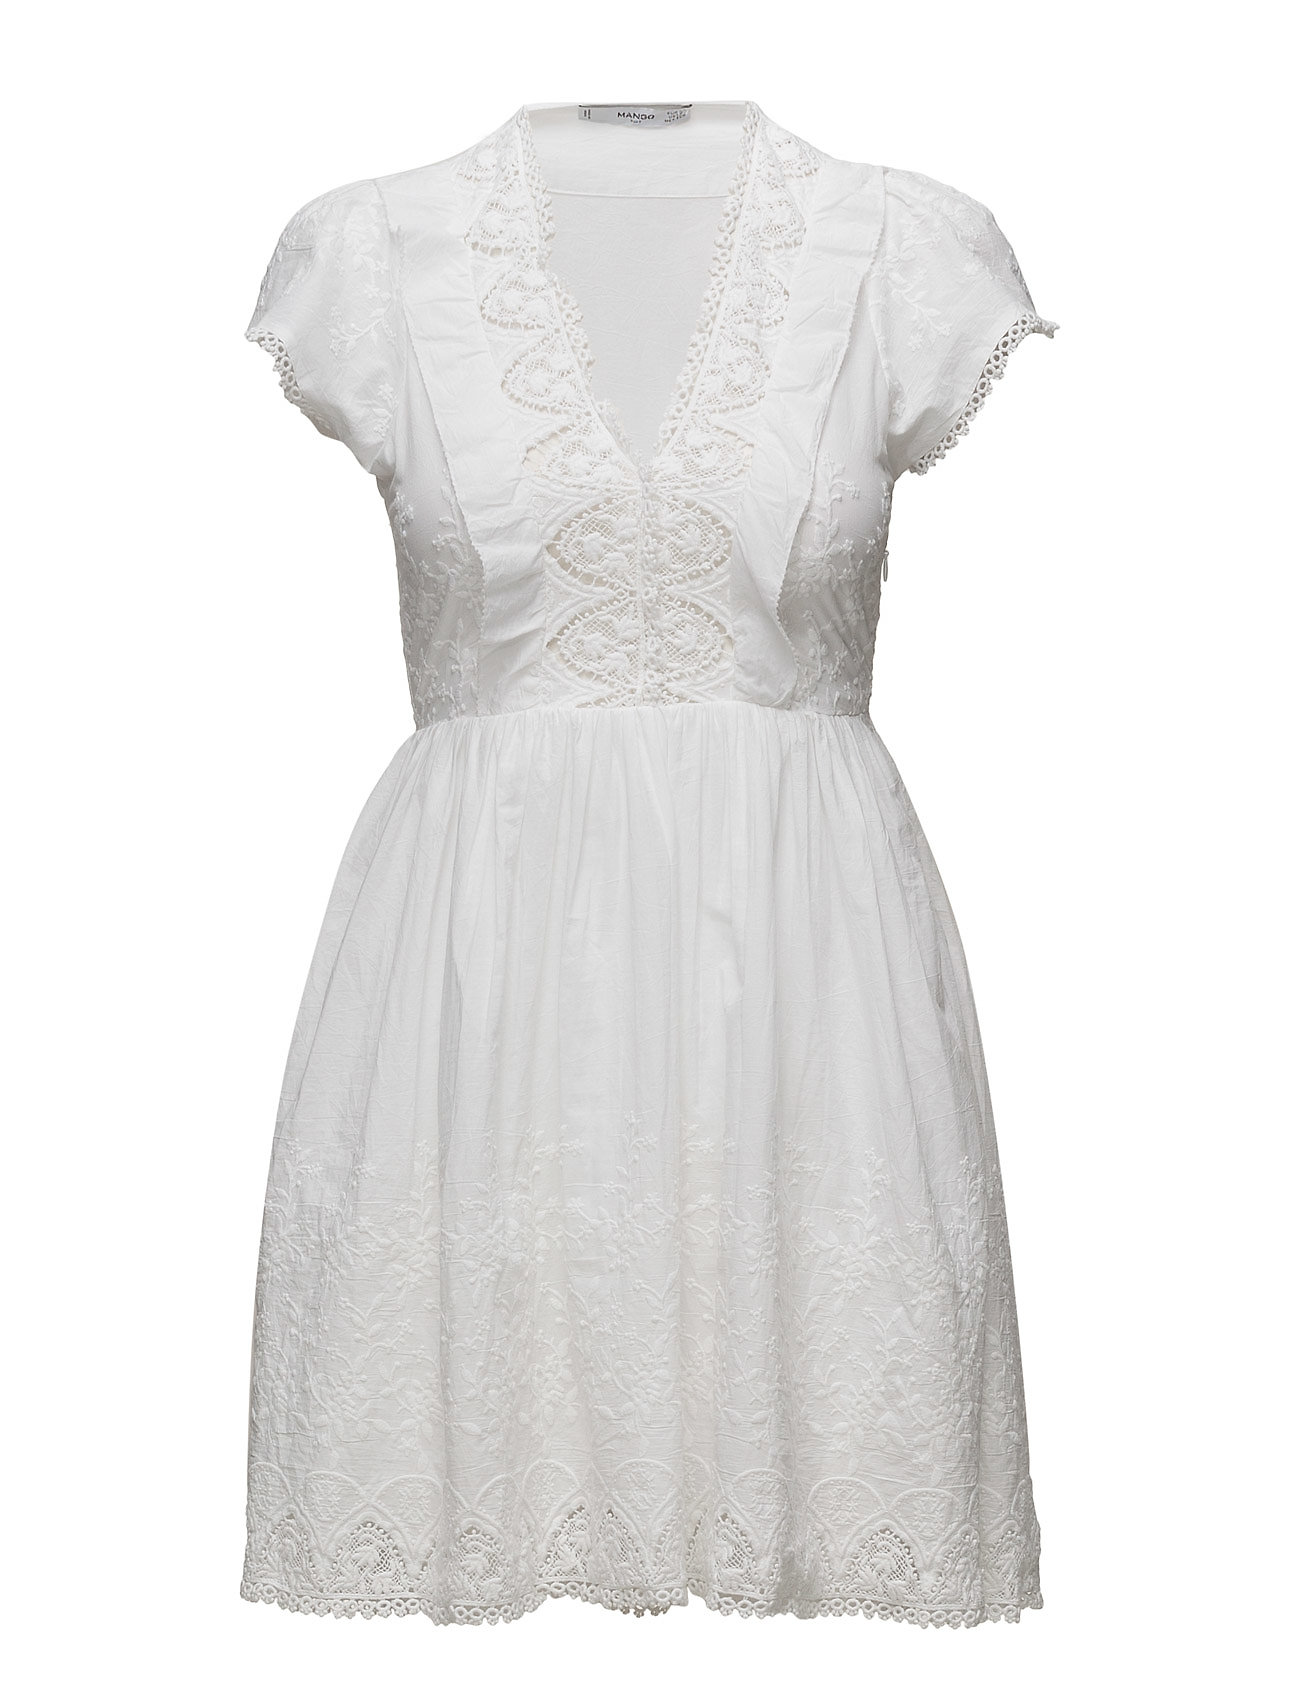 Til Panel Mango Damer Kjoler Korte Hvid Dress Embroidered I qwXzdE4Y